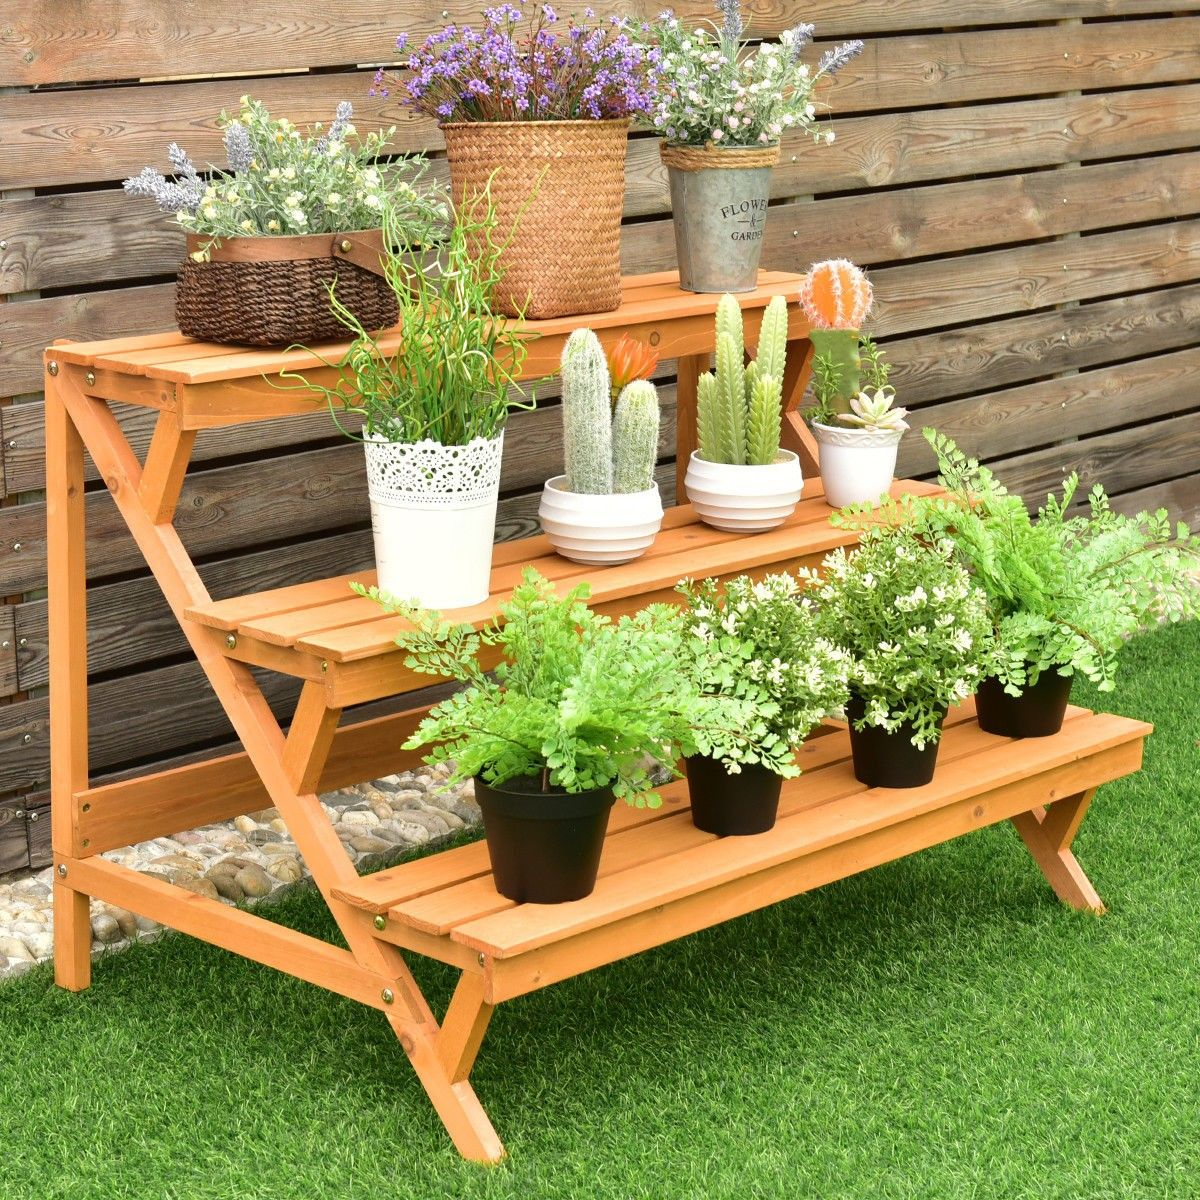 3 Tier Wood Step Ladder Plant Pot Rack Stand